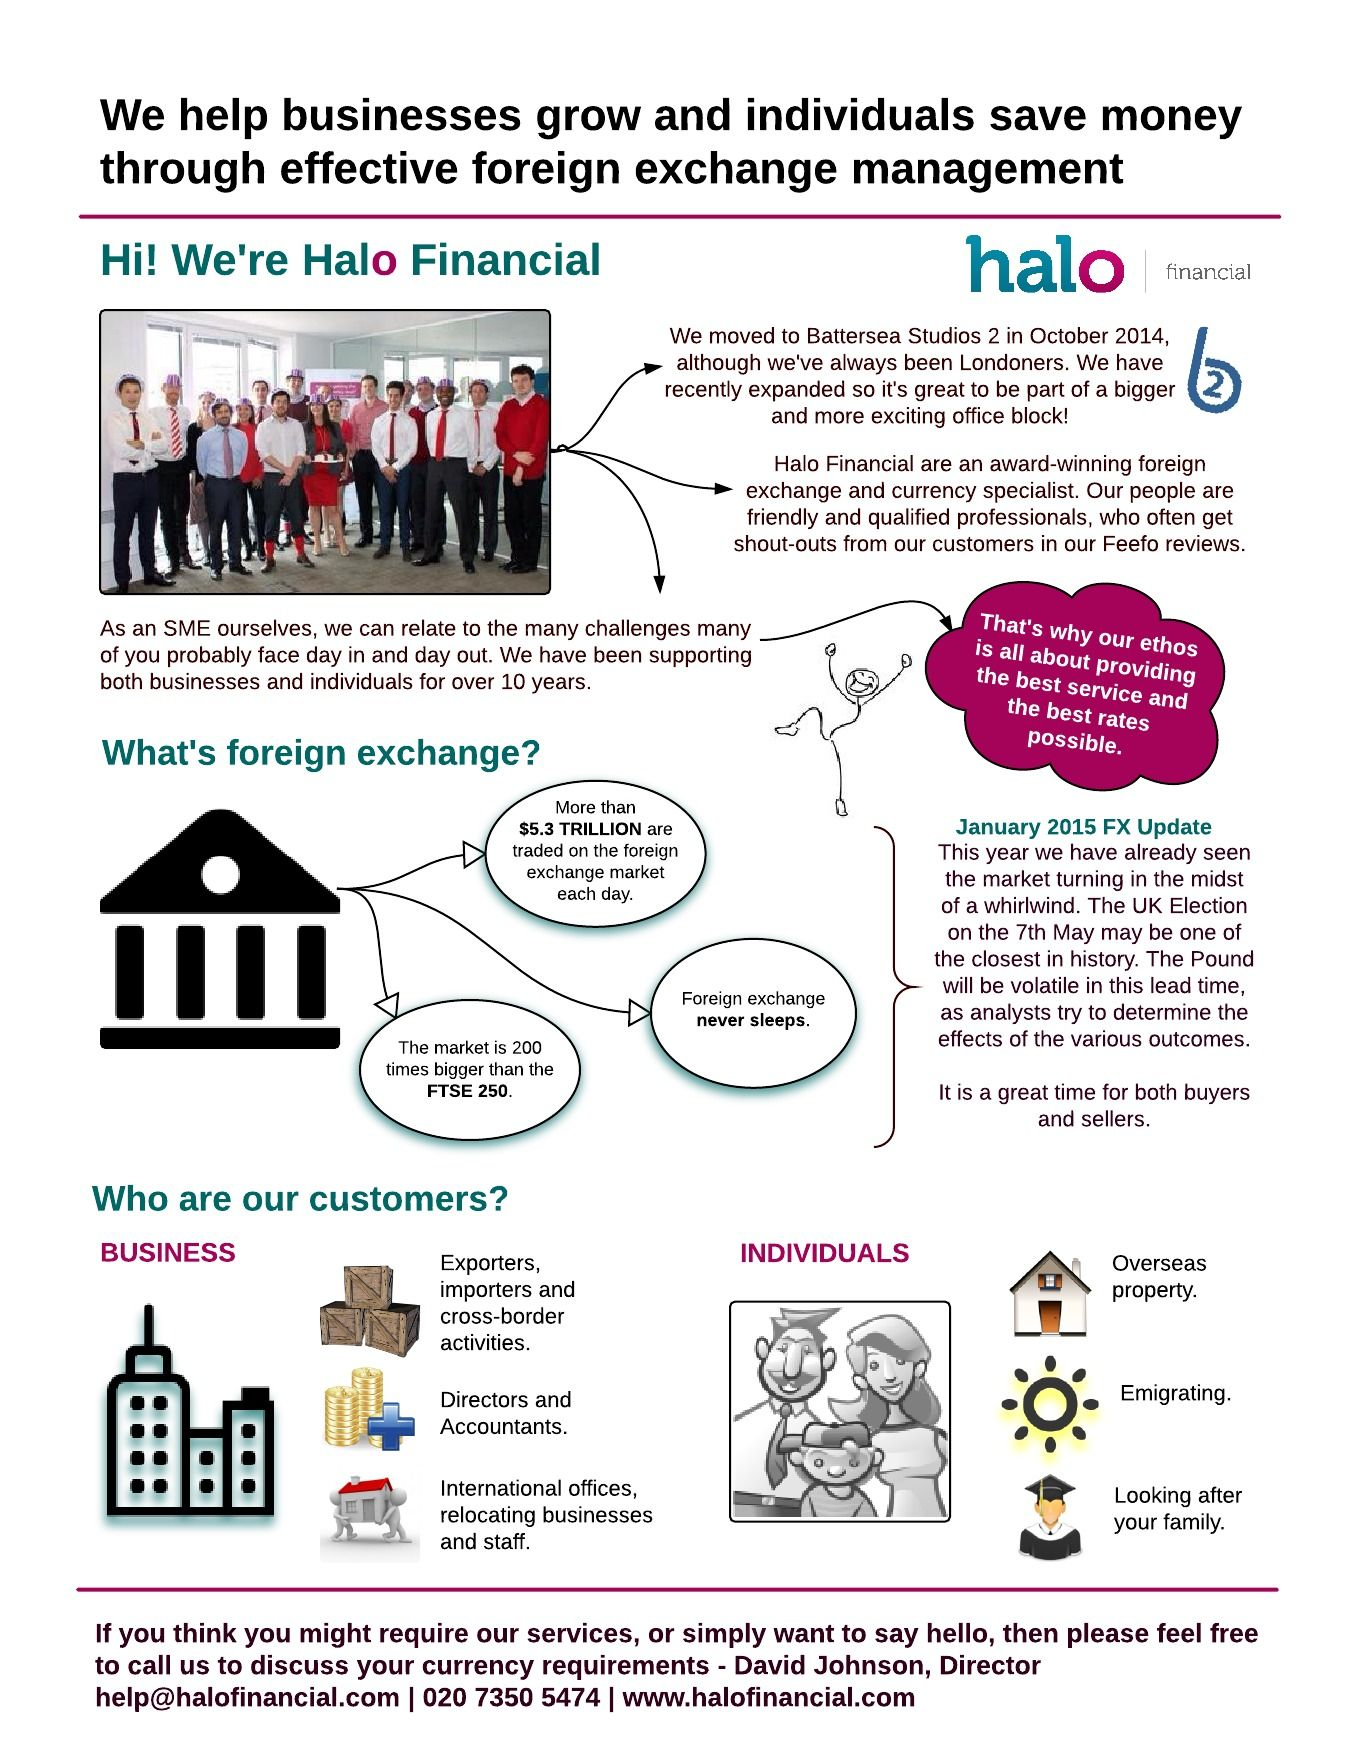 About Halo Financial and the foreign exchange market